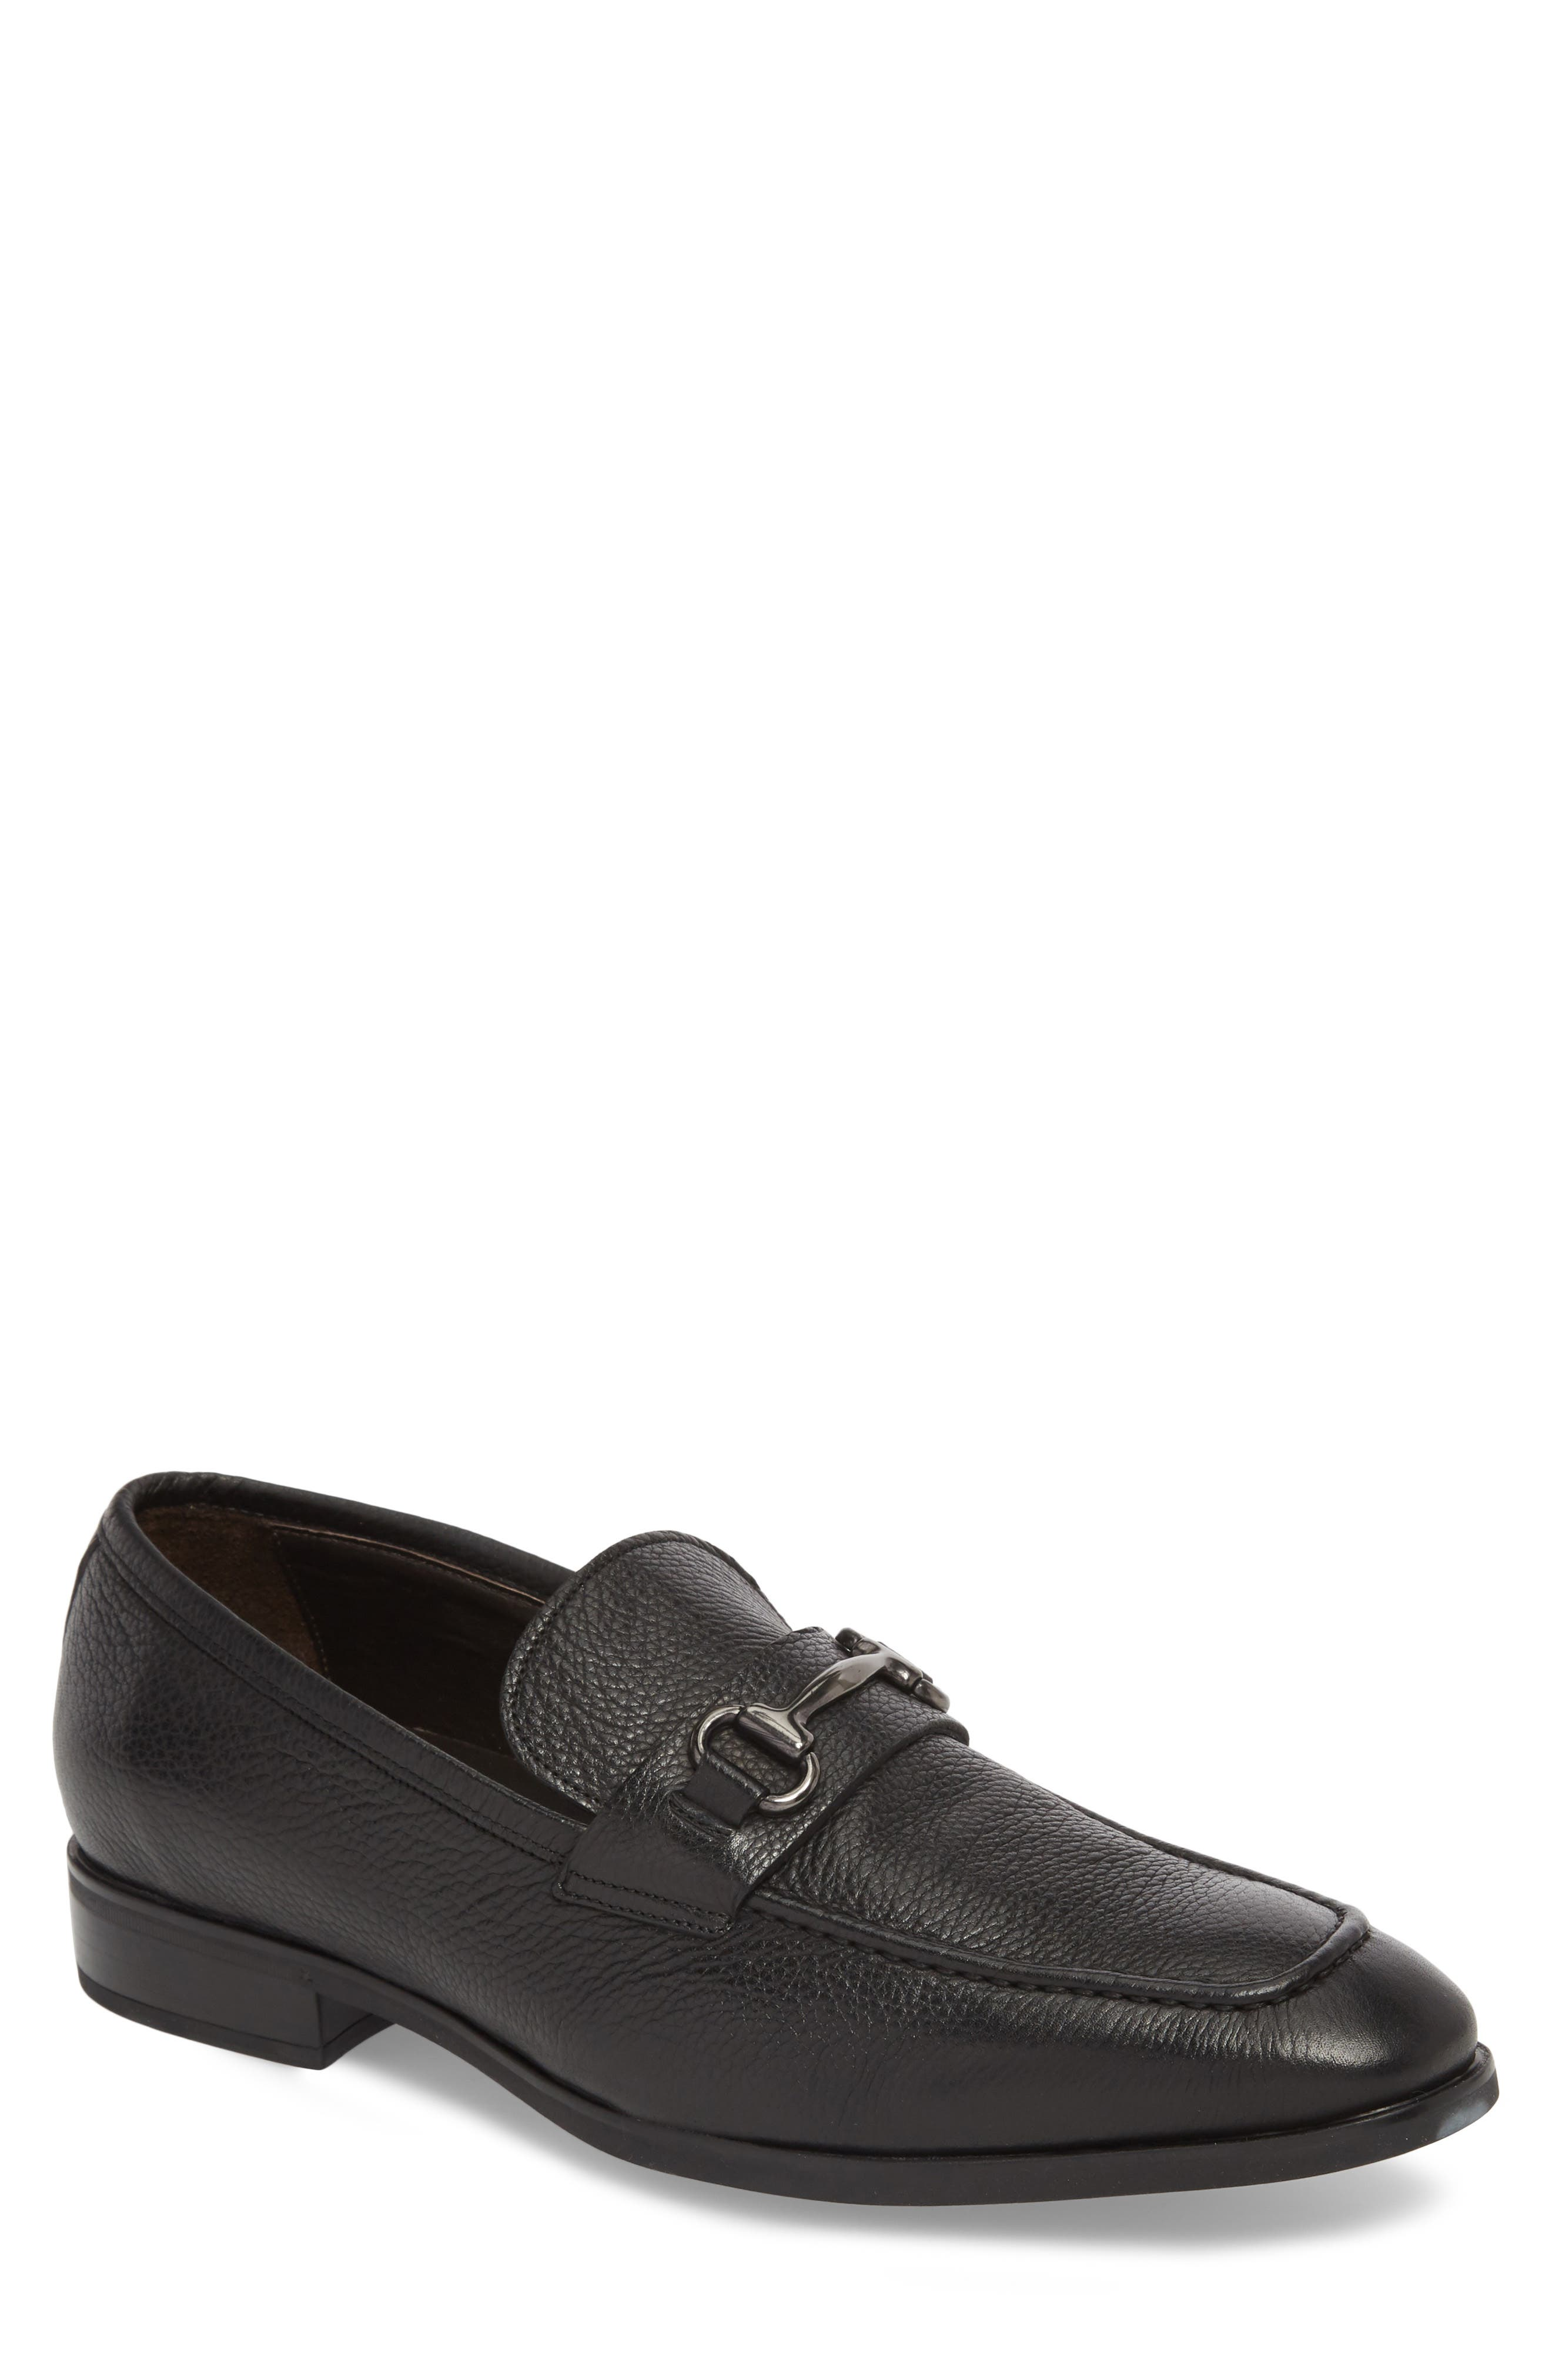 To Boot New York Brussels Bit Loafer- Black